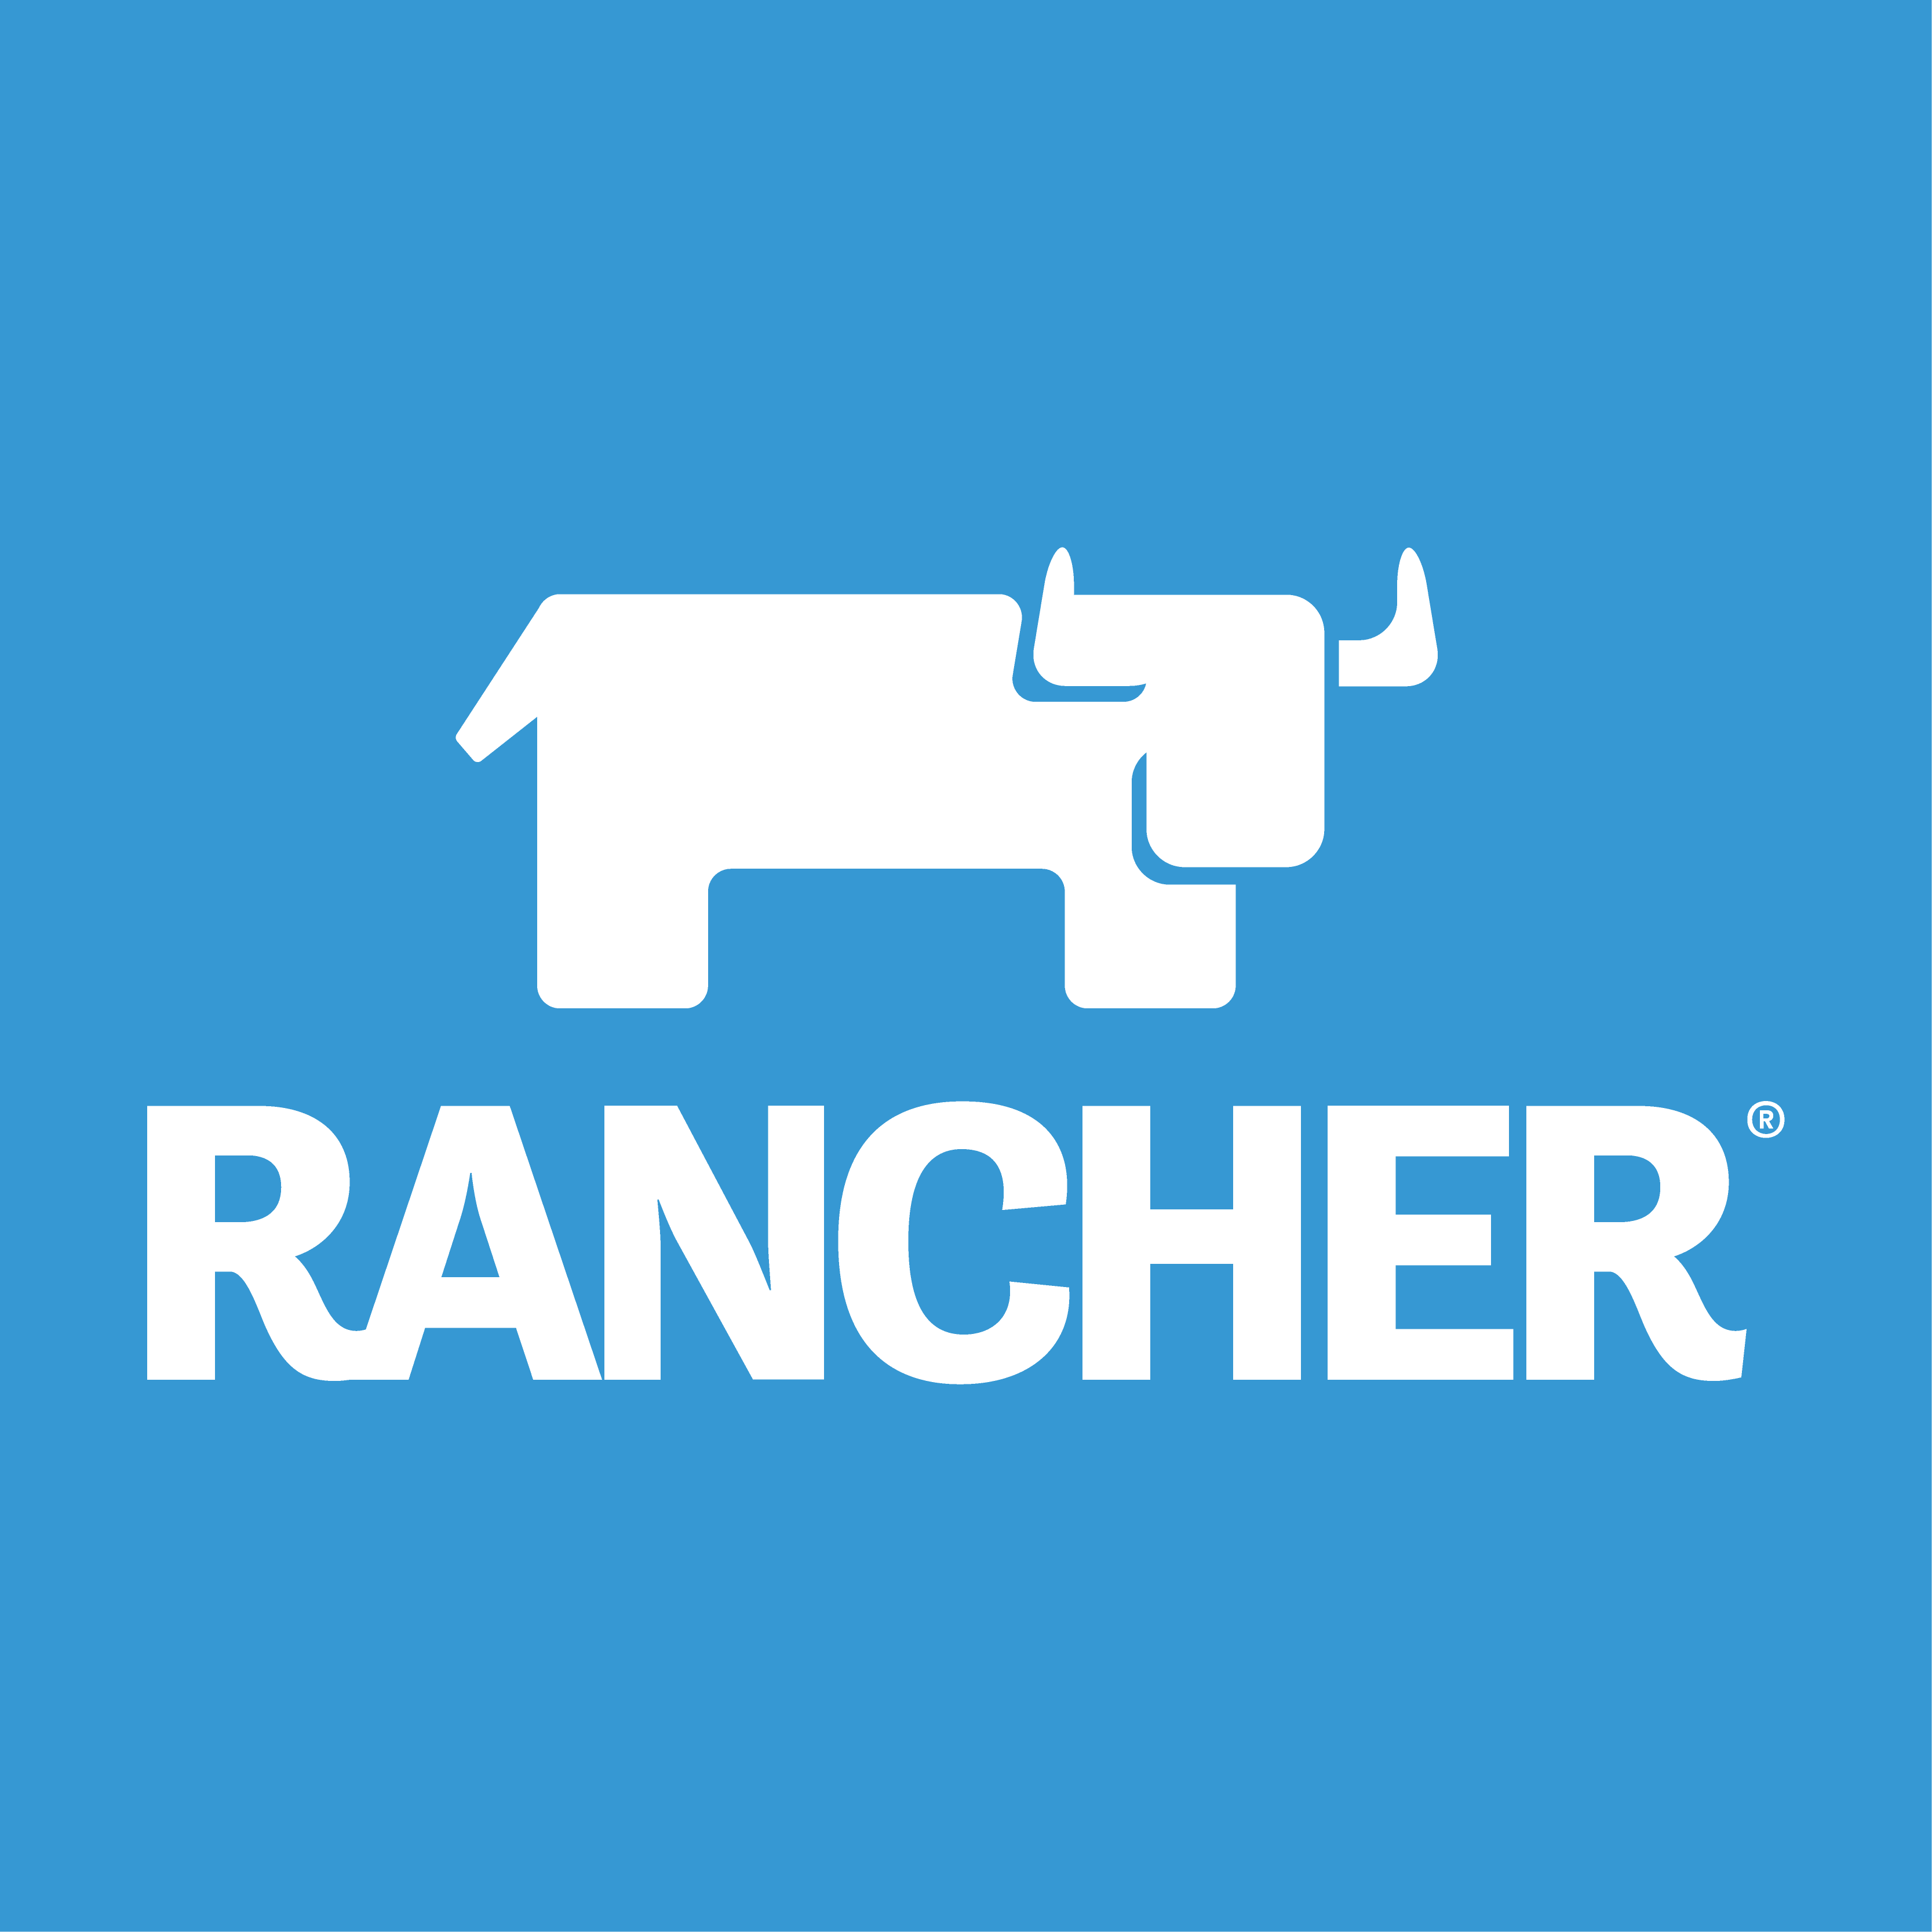 rancher.png